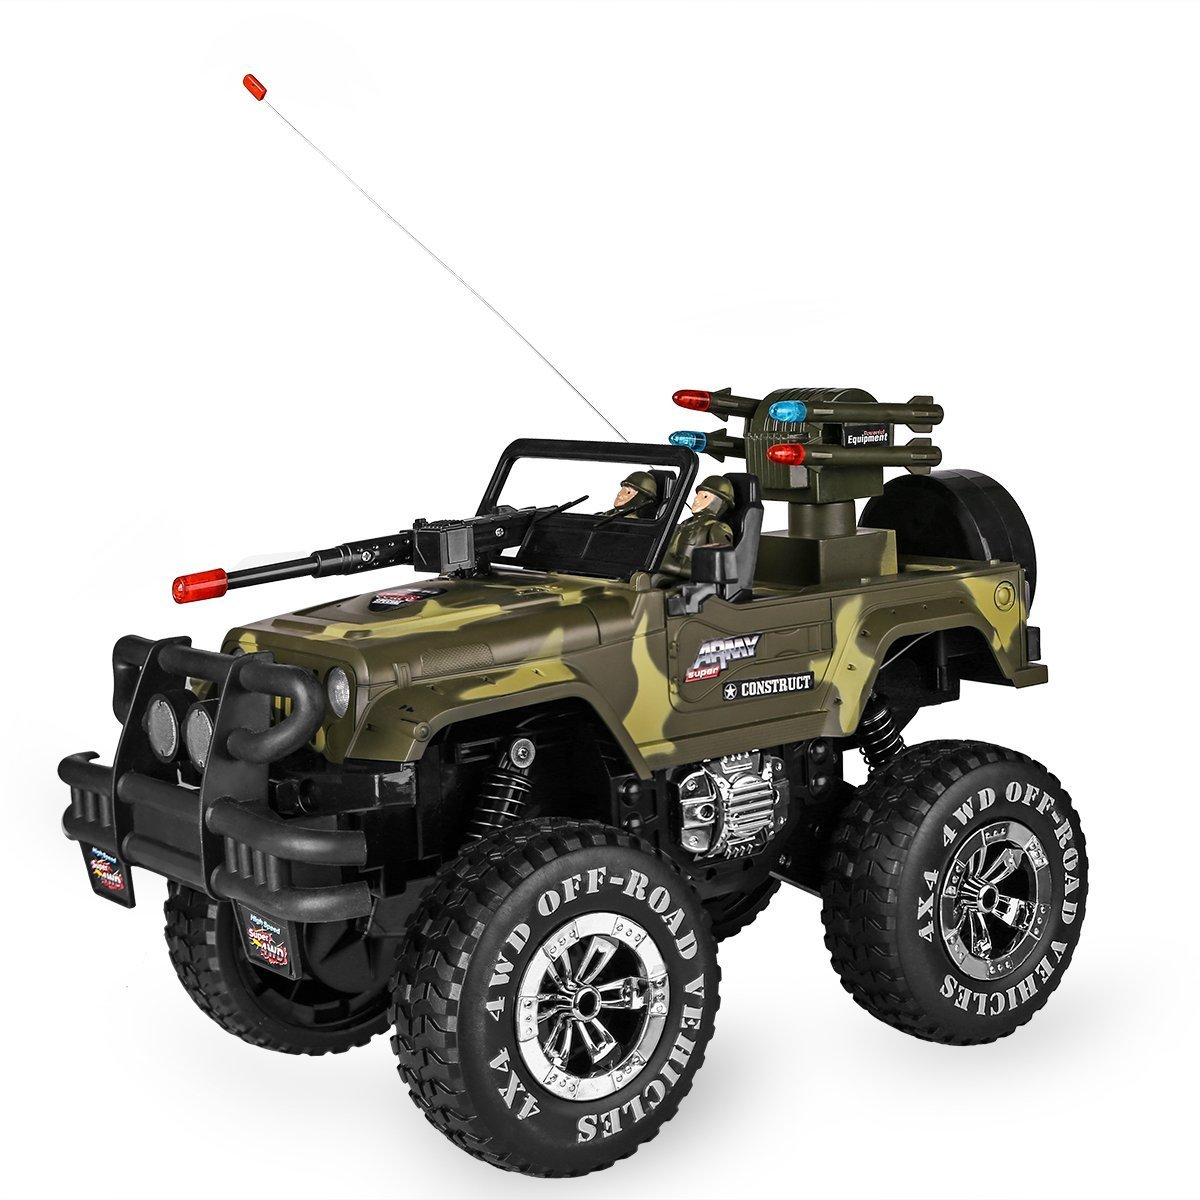 SZJJX 1:10 Remote Control Car 4WD Shaft Drive Truck Large Four-wheel Drive Remote Super Off-road racing Toy Radio Controlled rc Chargeable Off-road Rock Crawler(MYX-302 Vehicle Camouflage)